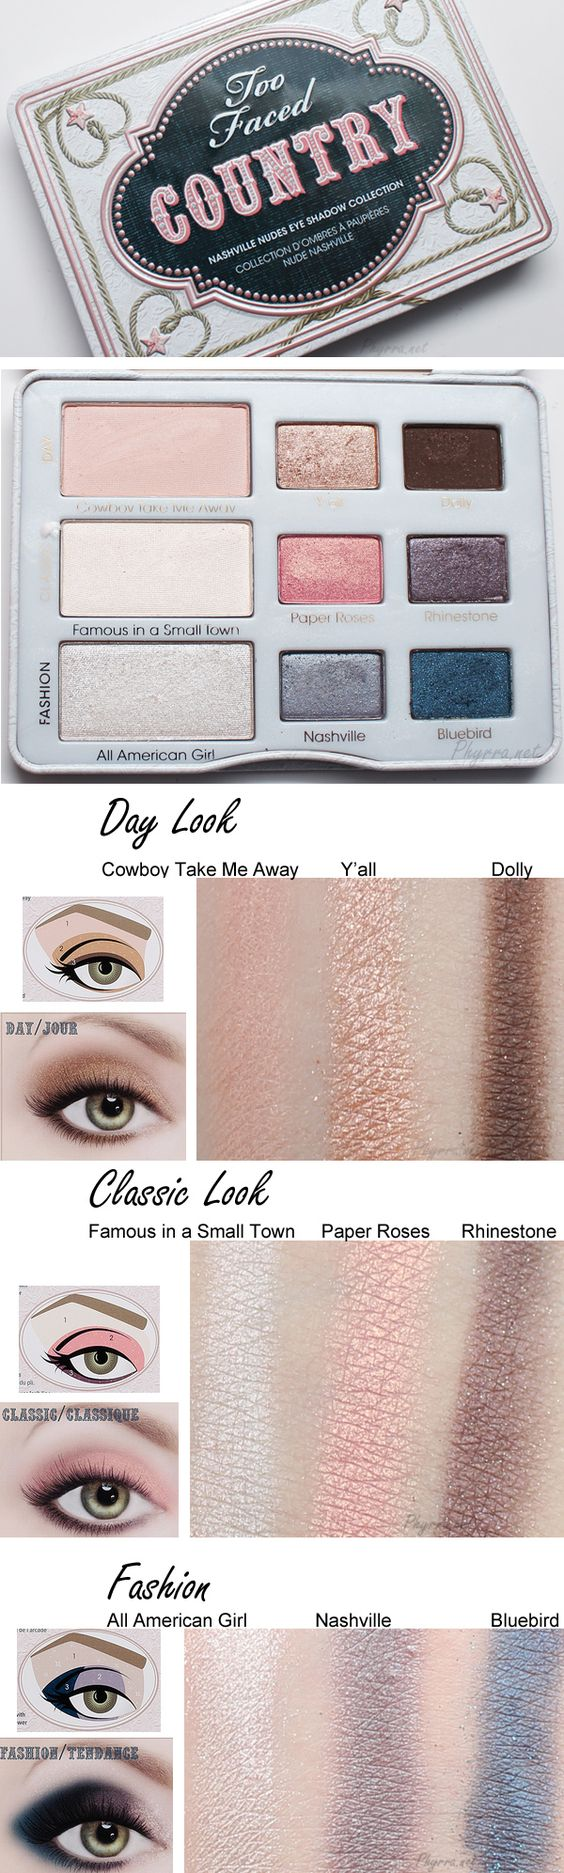 Pretty Eyes Shadow. Get a discount at Sephora and get 10% off this palette at trendslove www.trendslove.com/